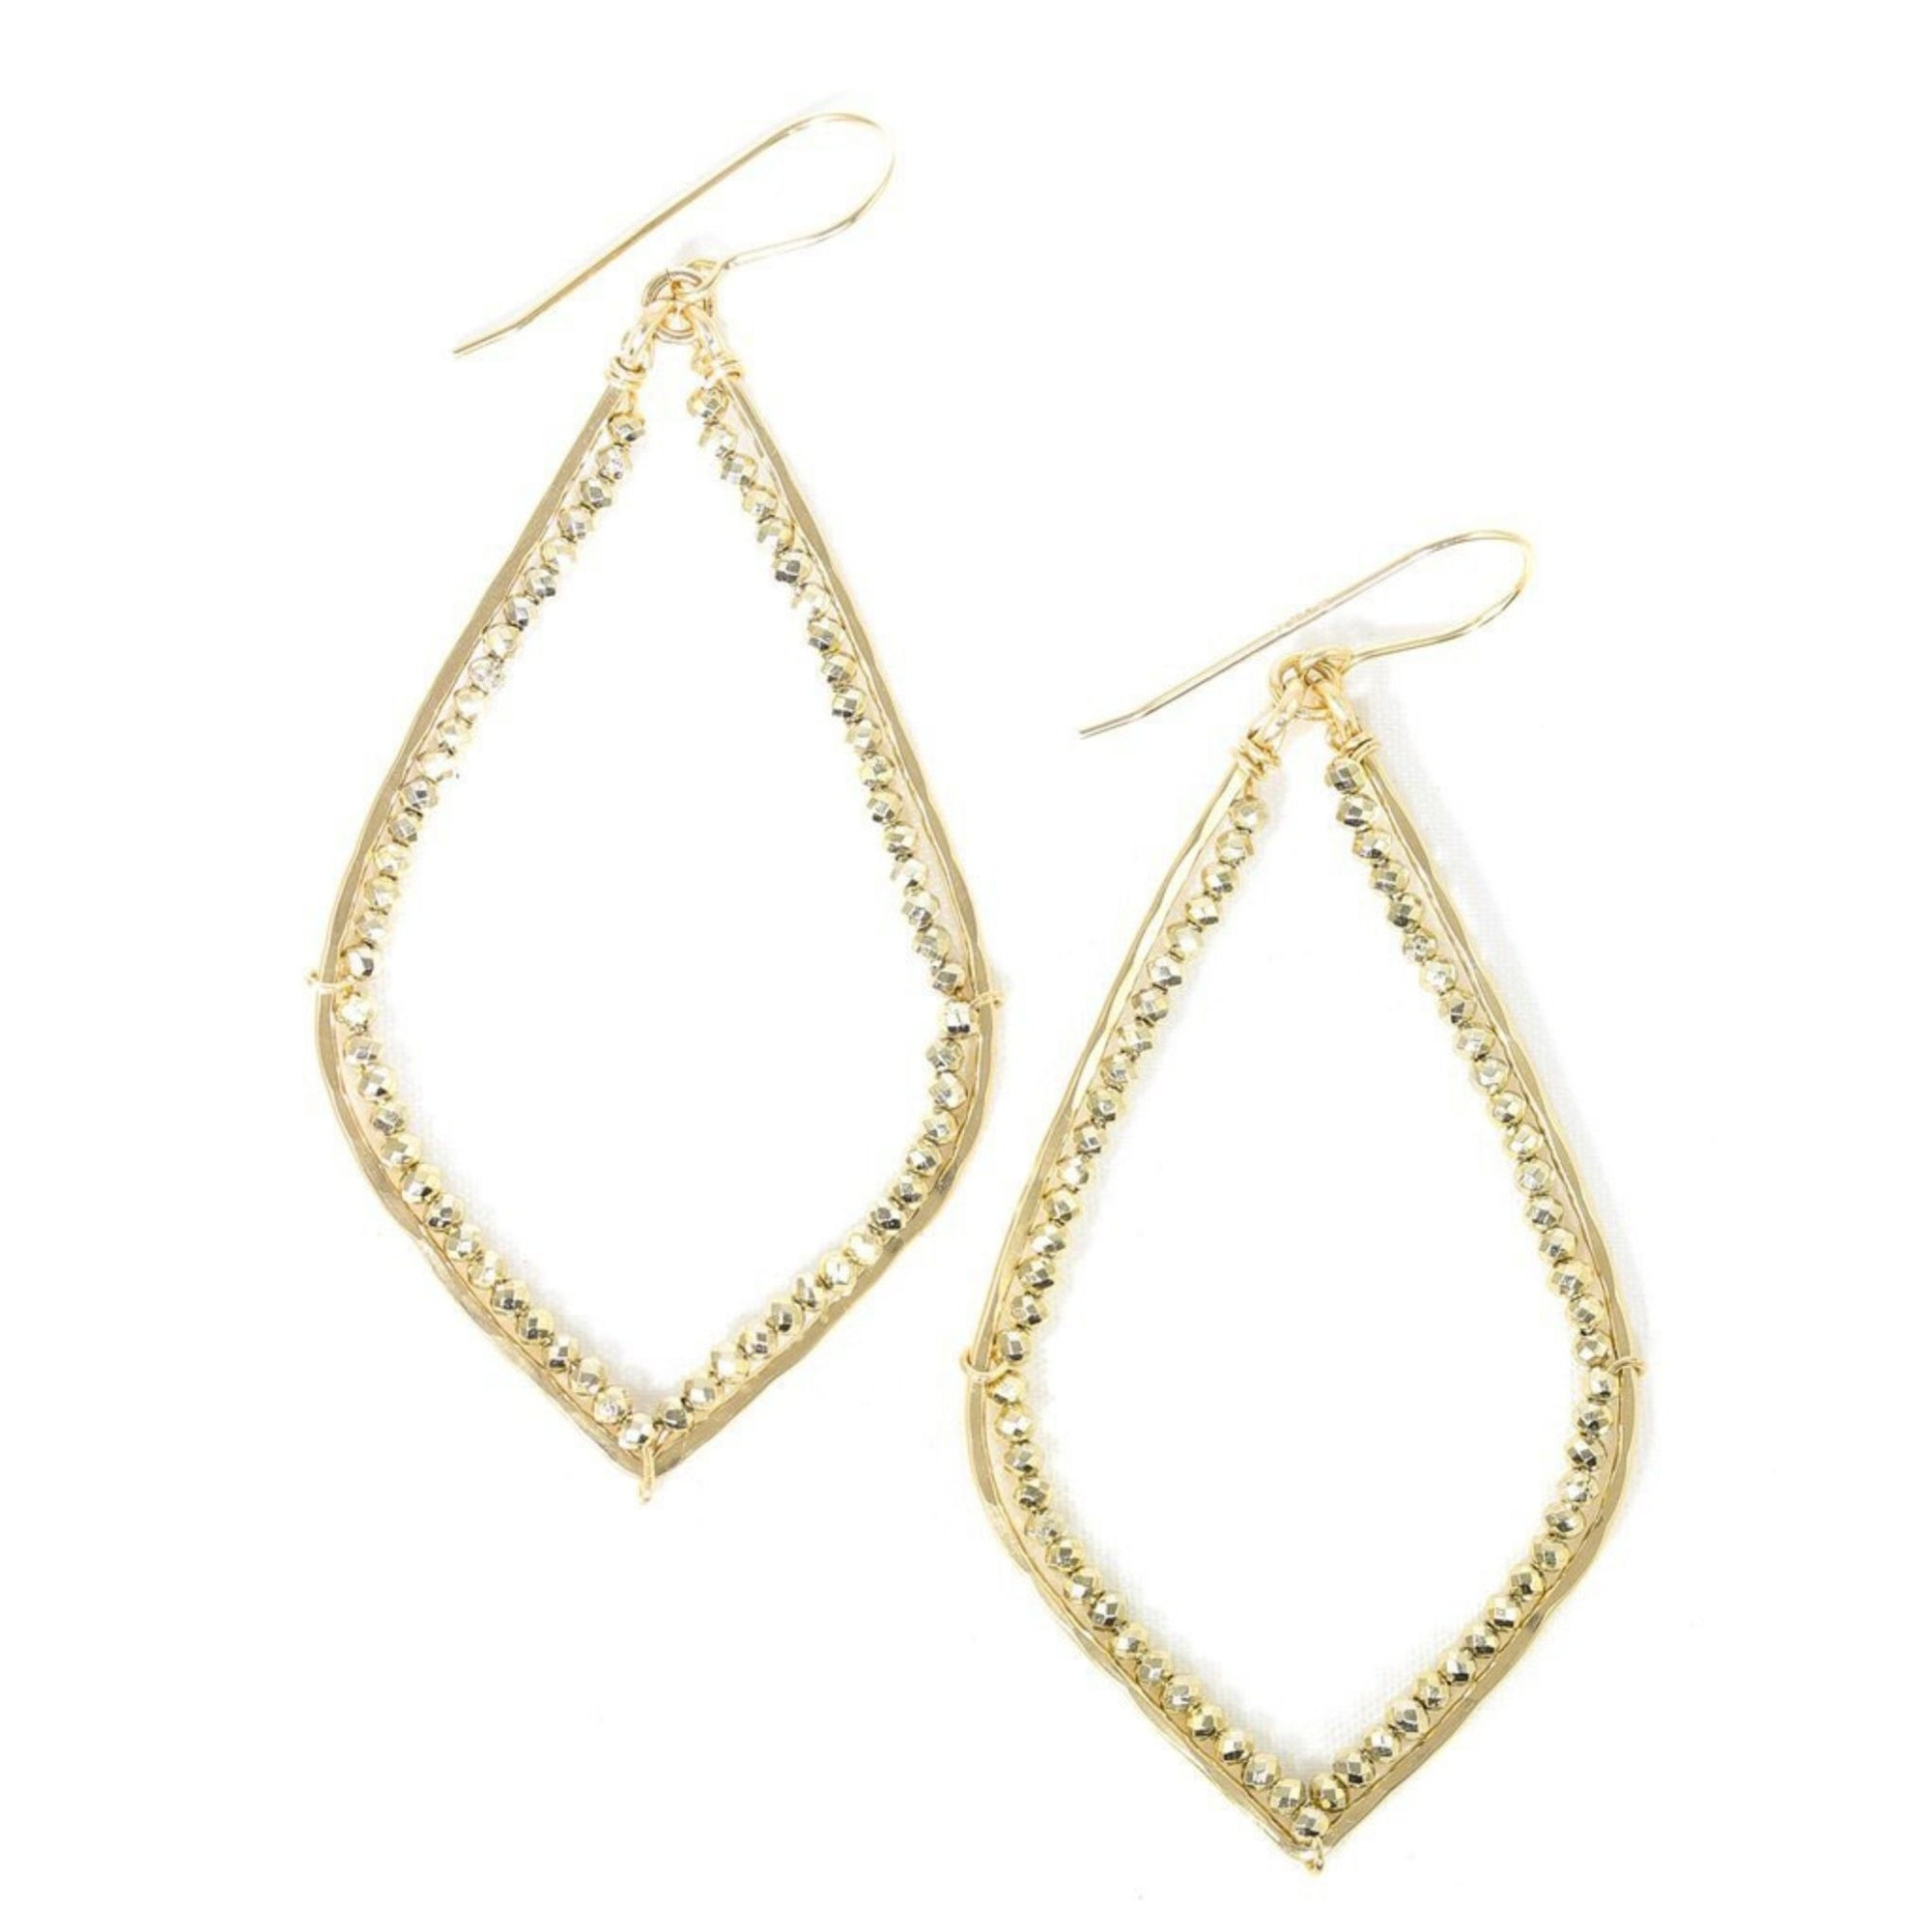 Santorini Gold Earrings